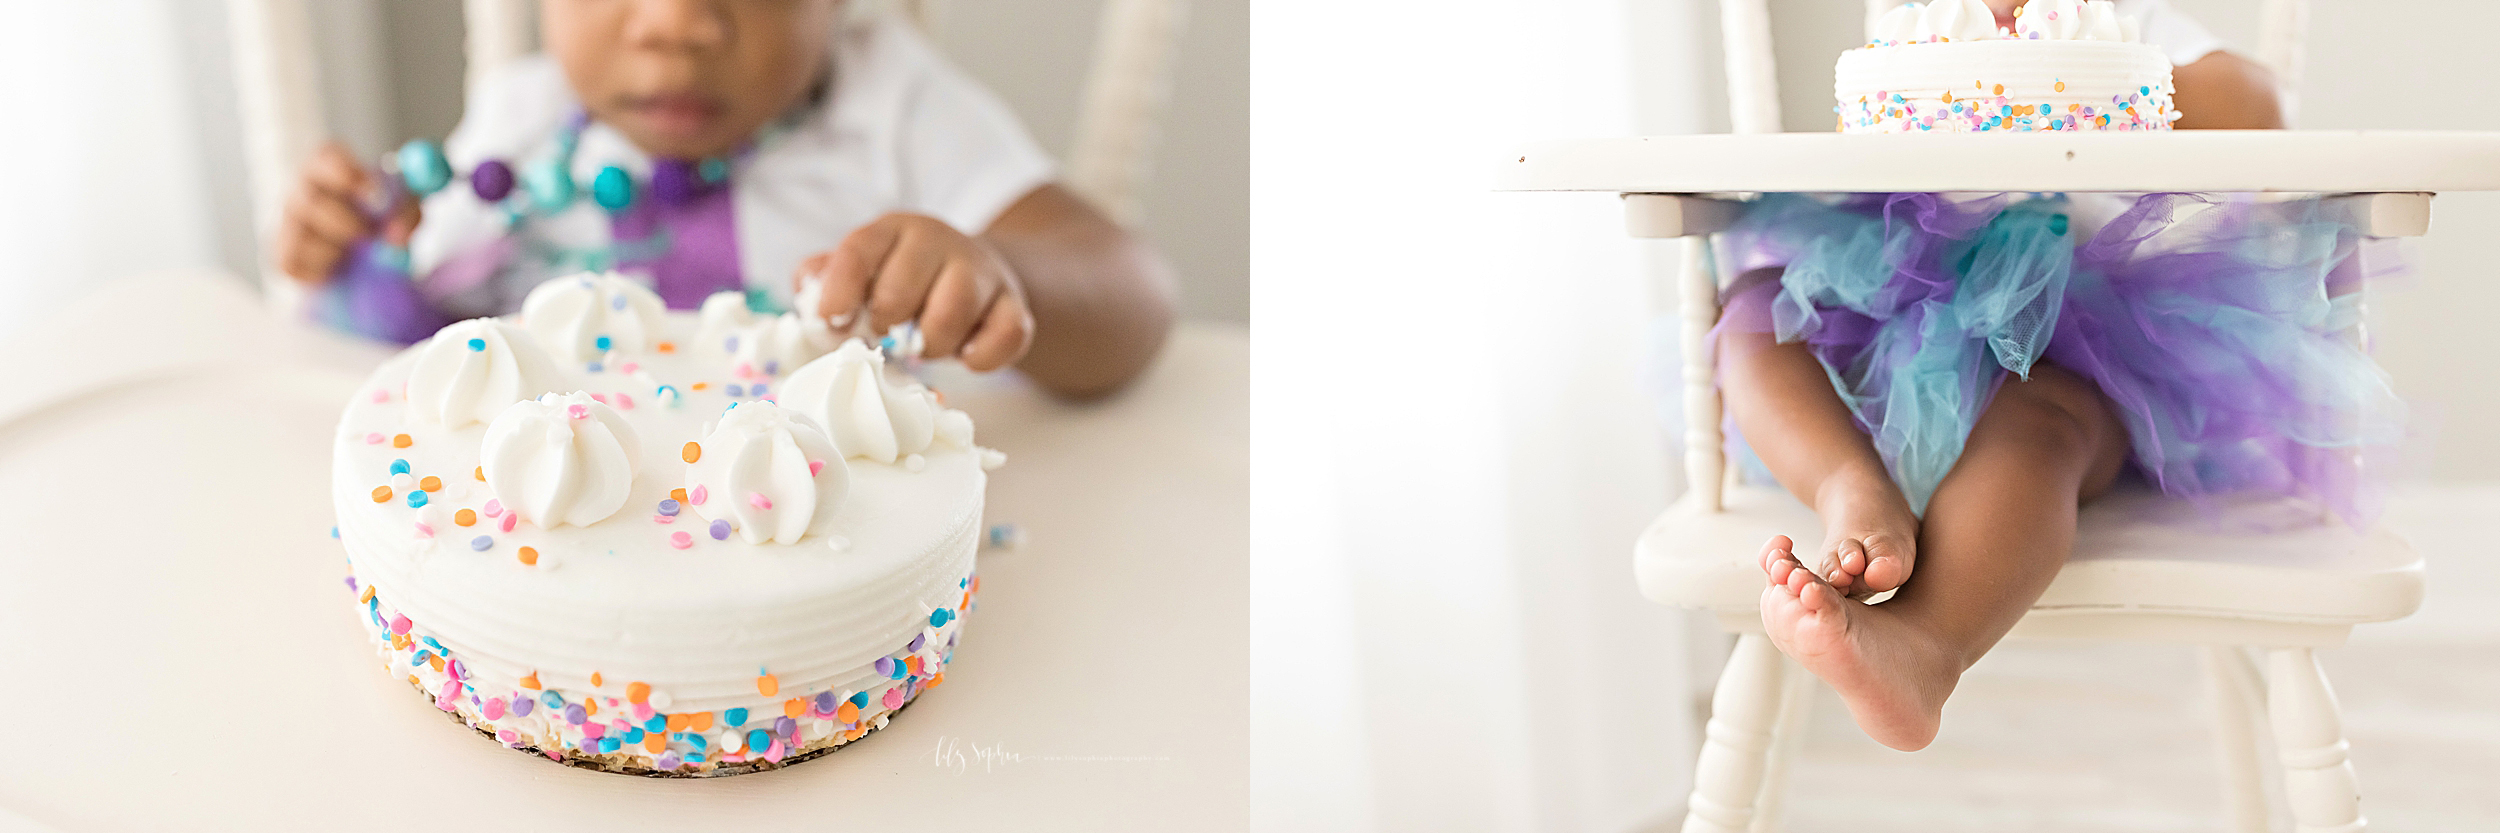 atlanta-buckhead-brookhaven-decatur-lily-sophia-photography--photographer-portraits-grant-park-intown-first-birthday-tutu-cake-smash_0997.jpg